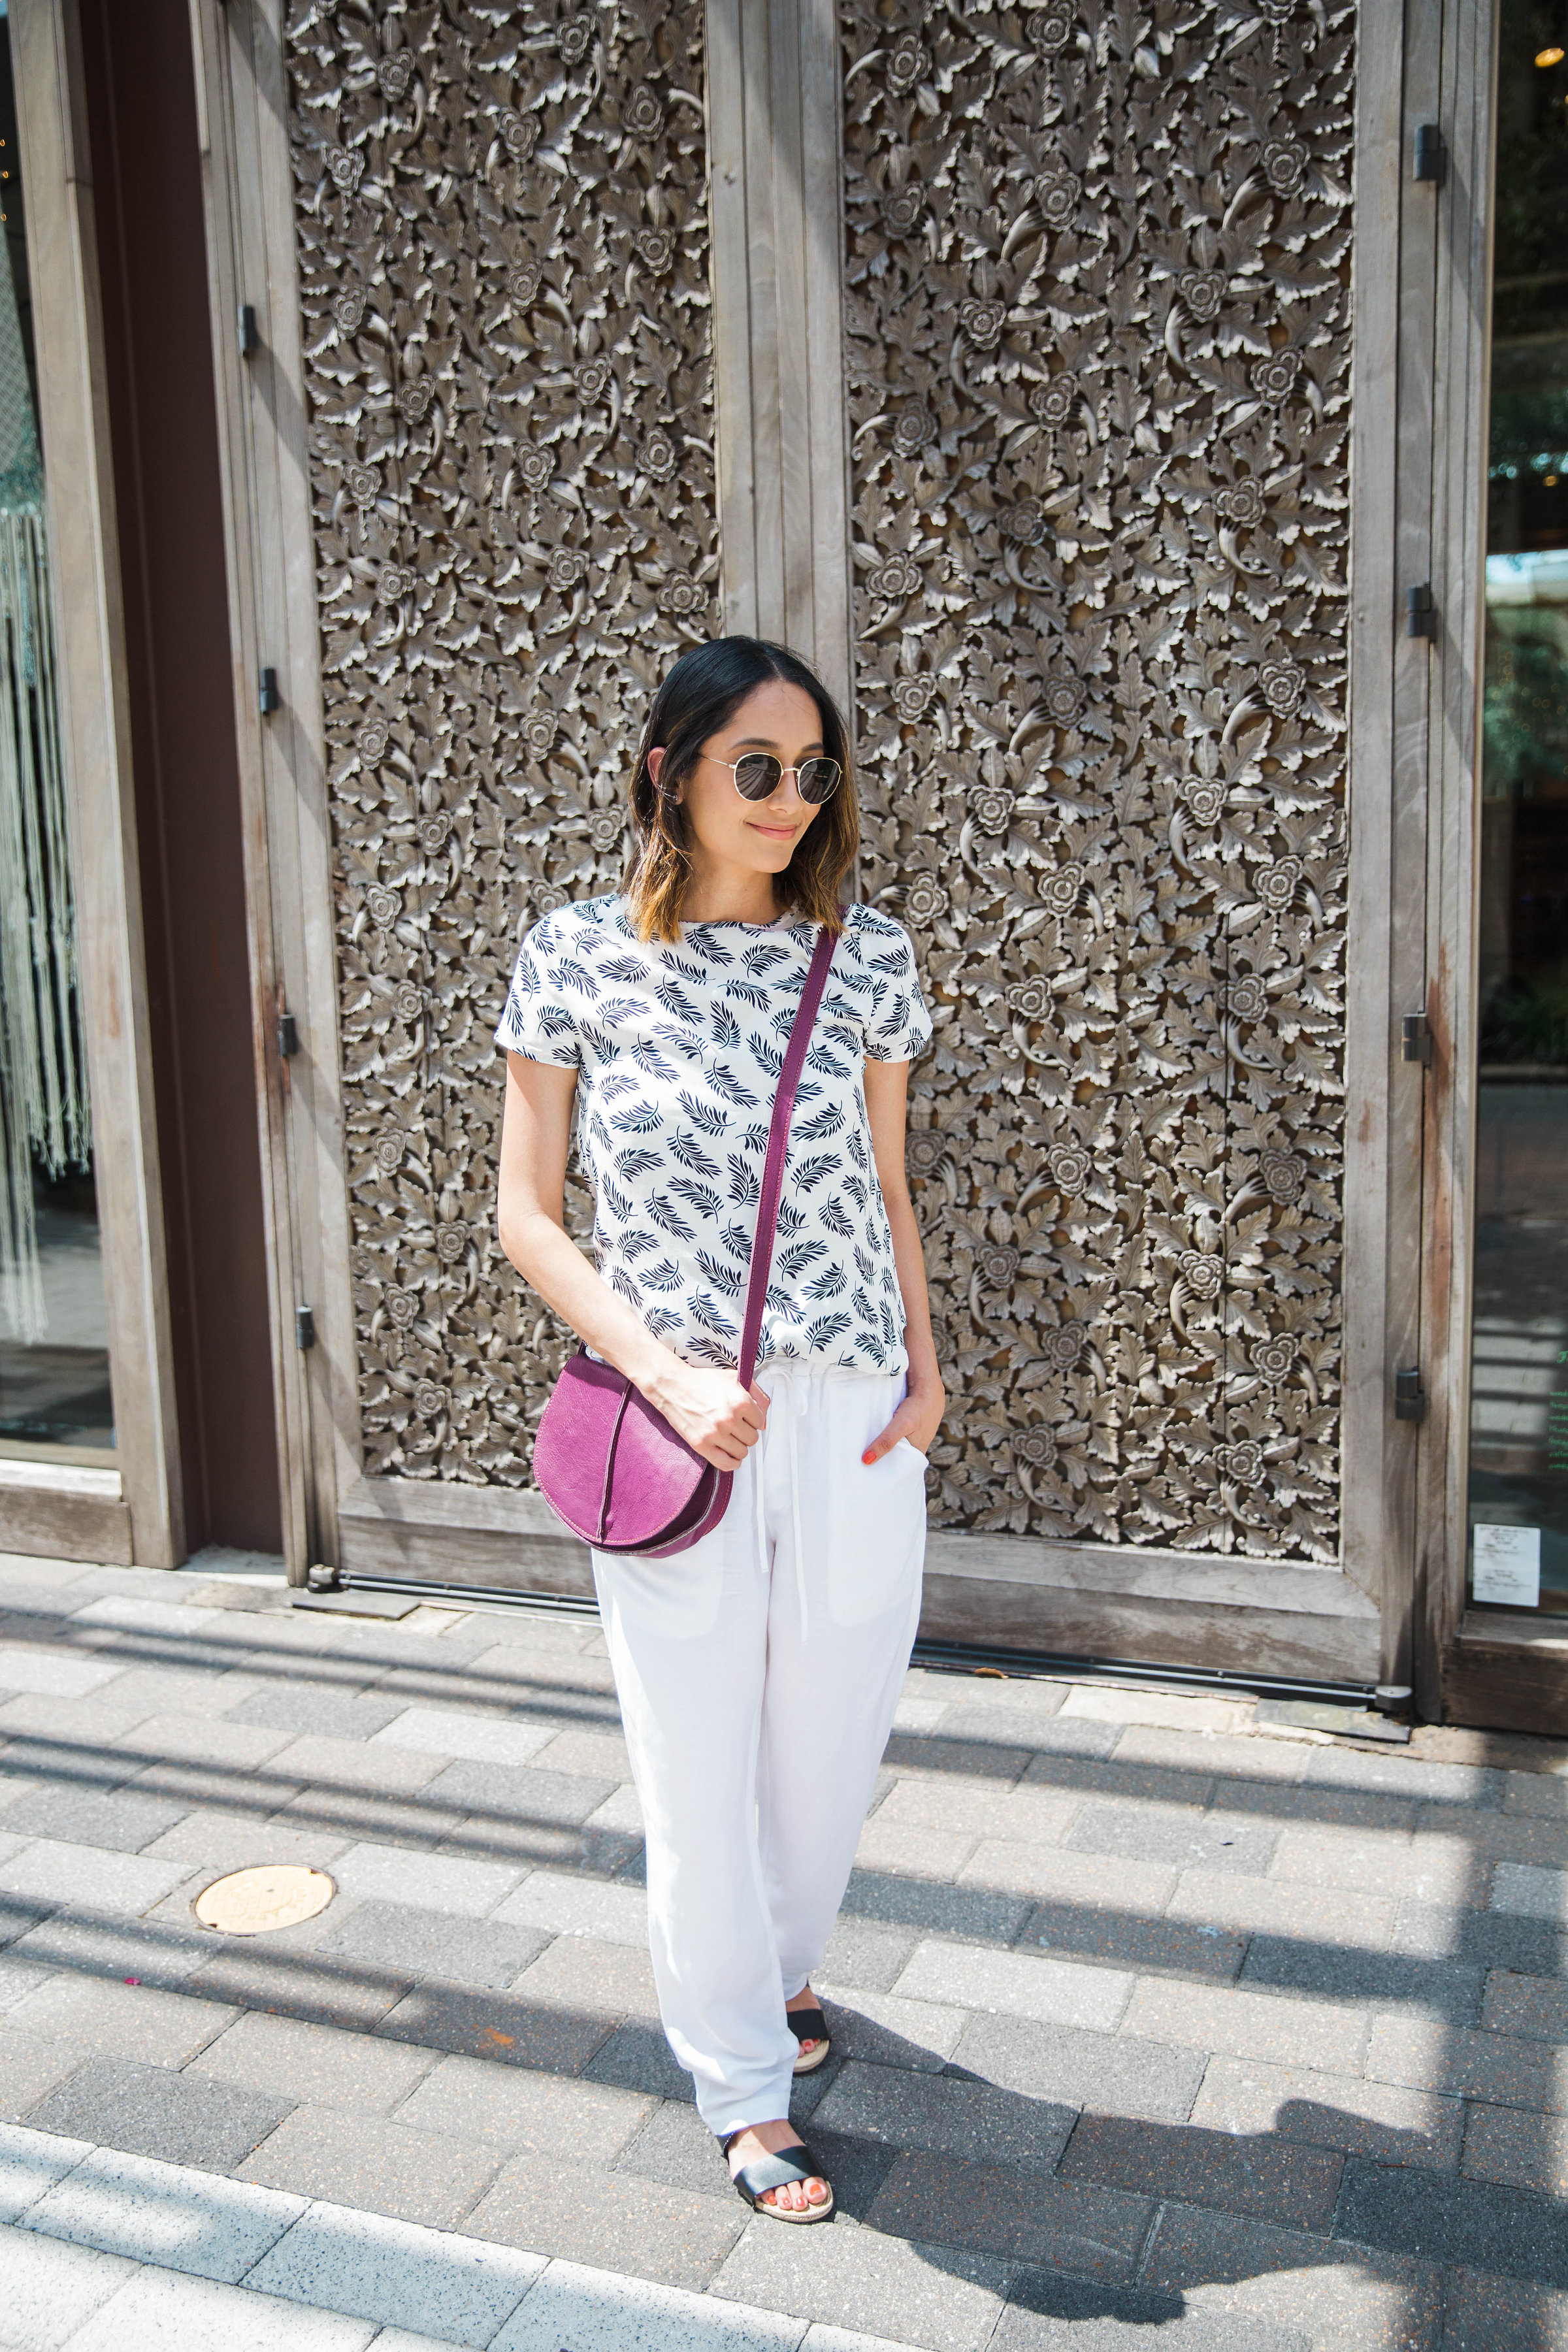 The Perfect Summer Whites | White Pants | Feather Print Top | round Sunglasses | Casual Summer Look